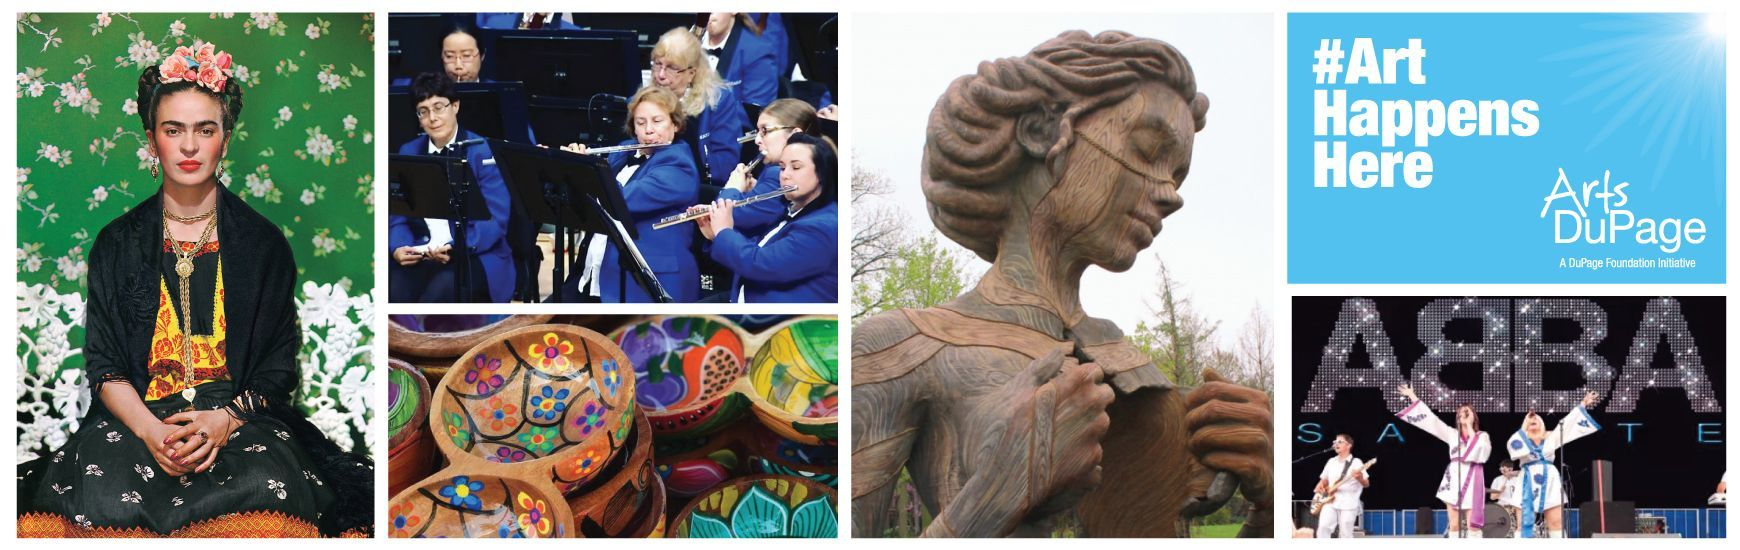 Enjoy the Arts in DuPage This Summer